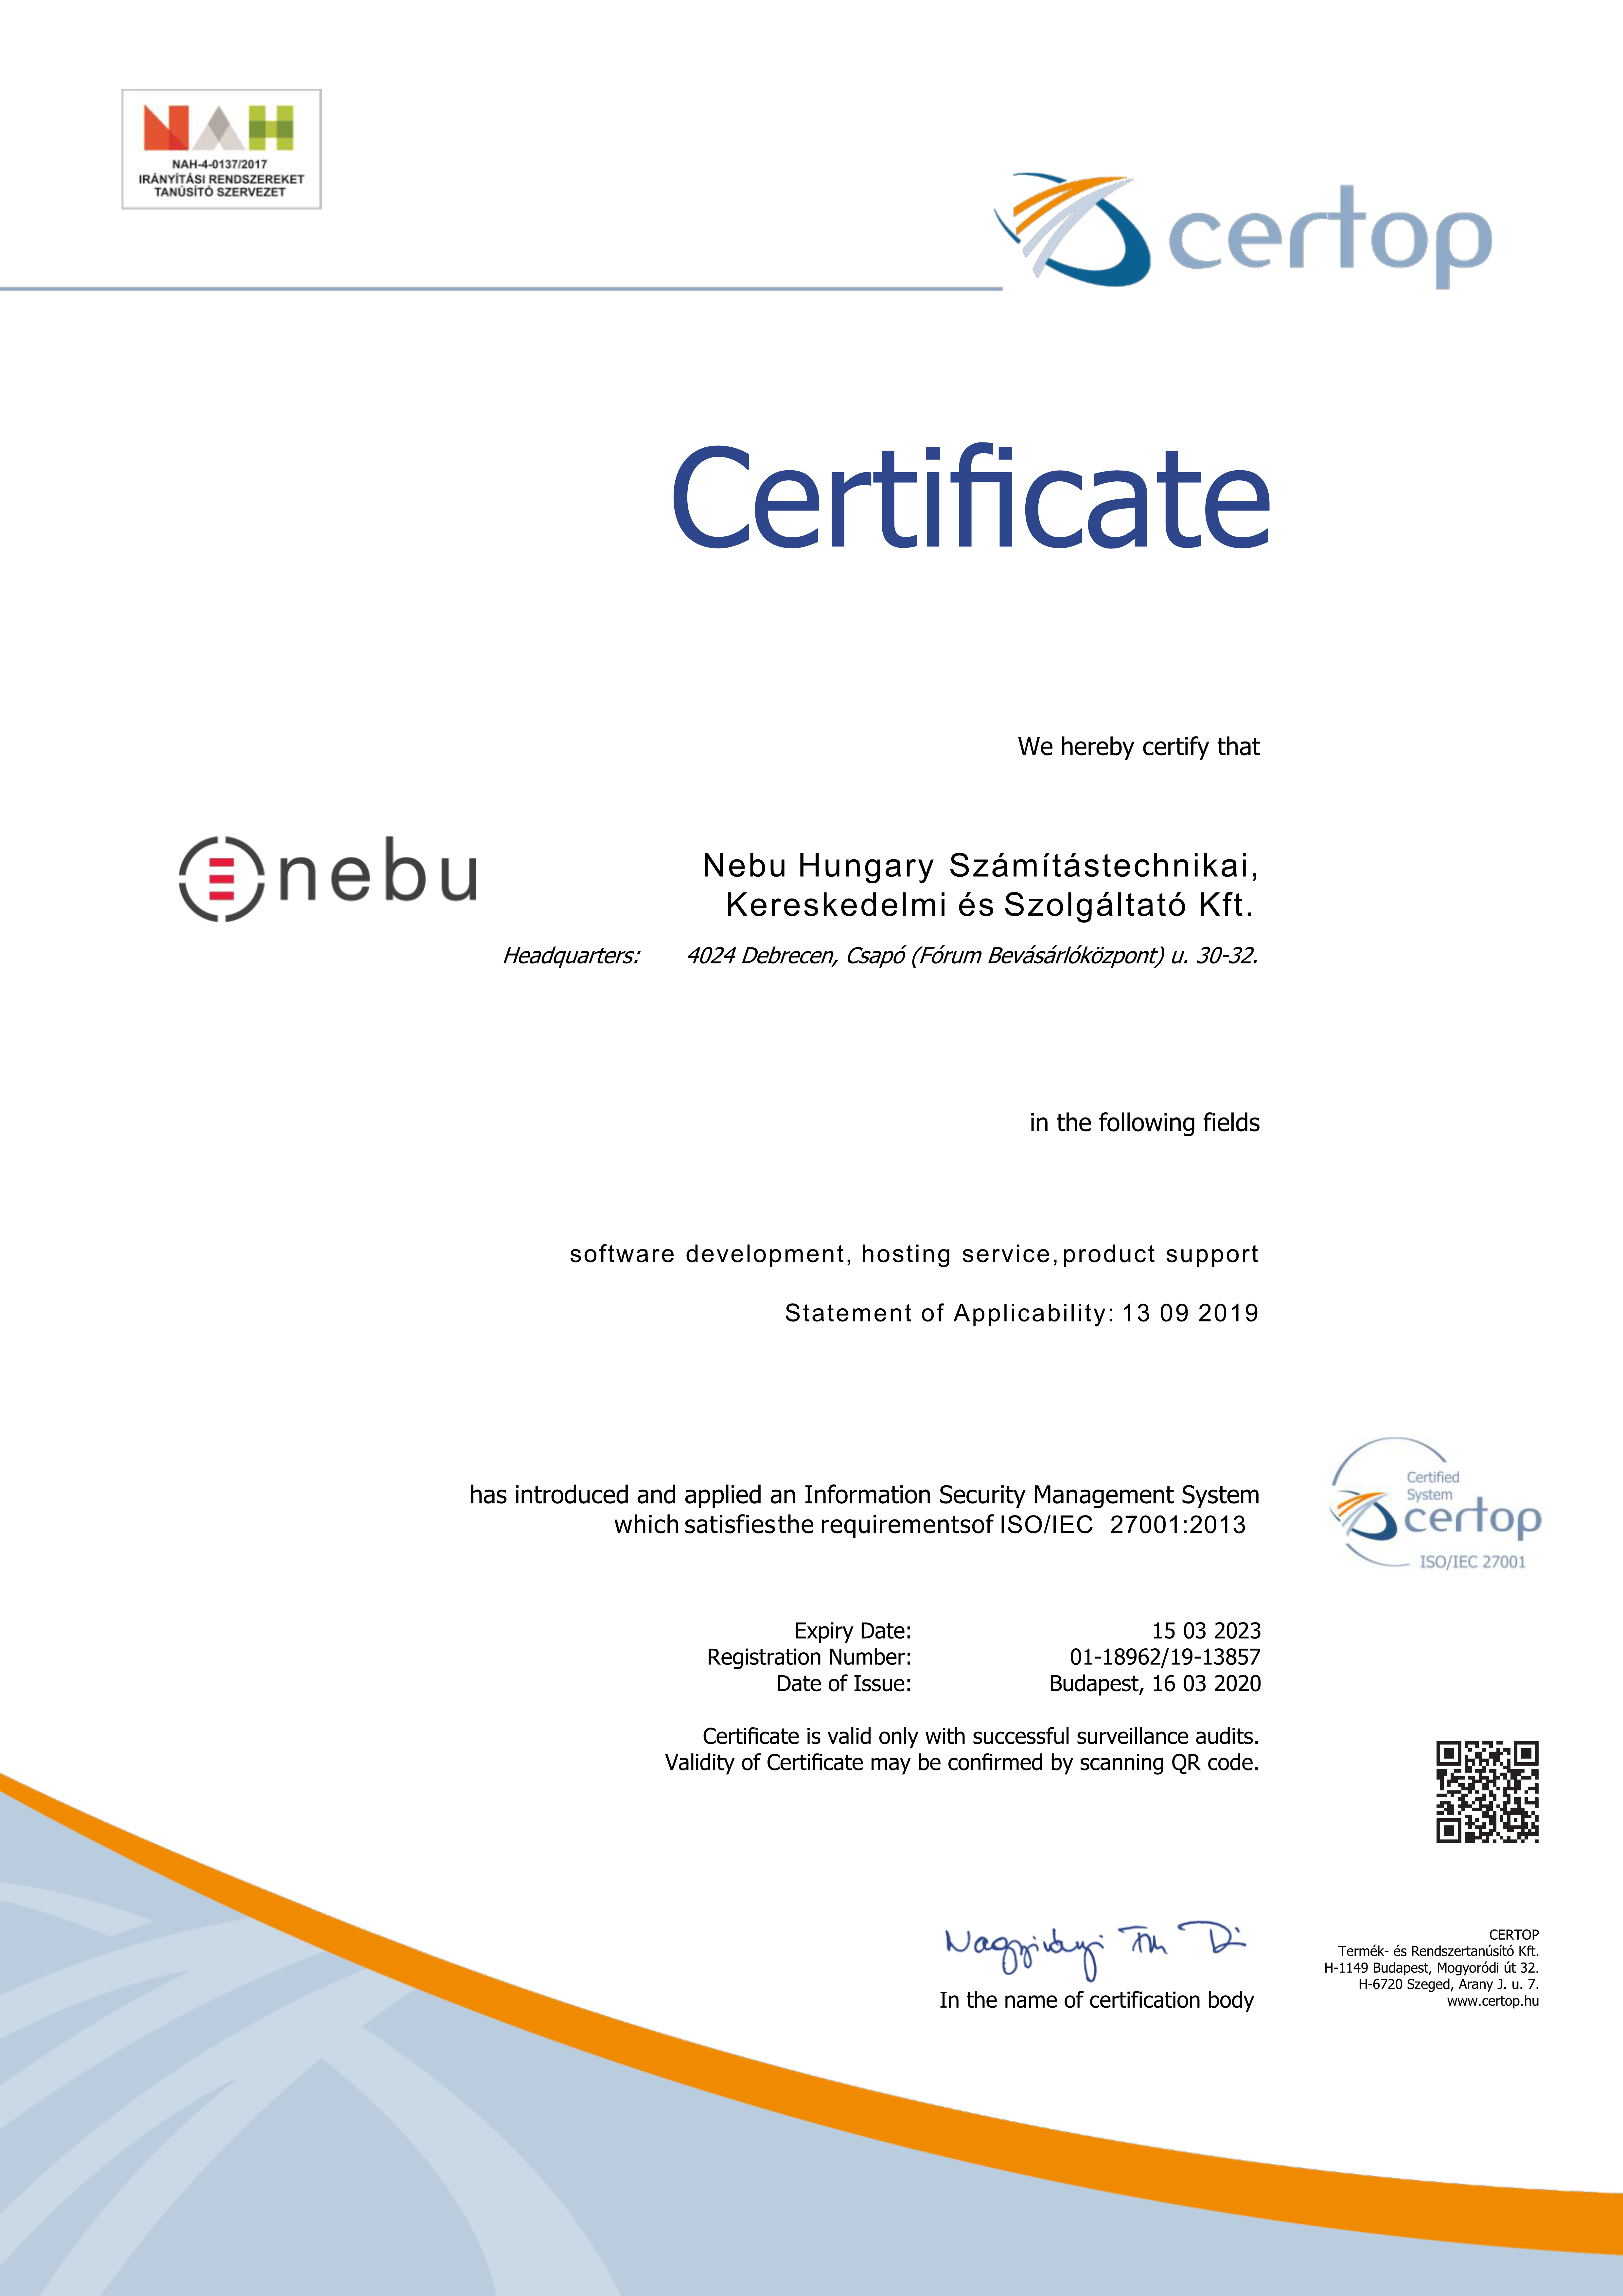 Nebu Ktf. is an ISO 27001 Certified Company